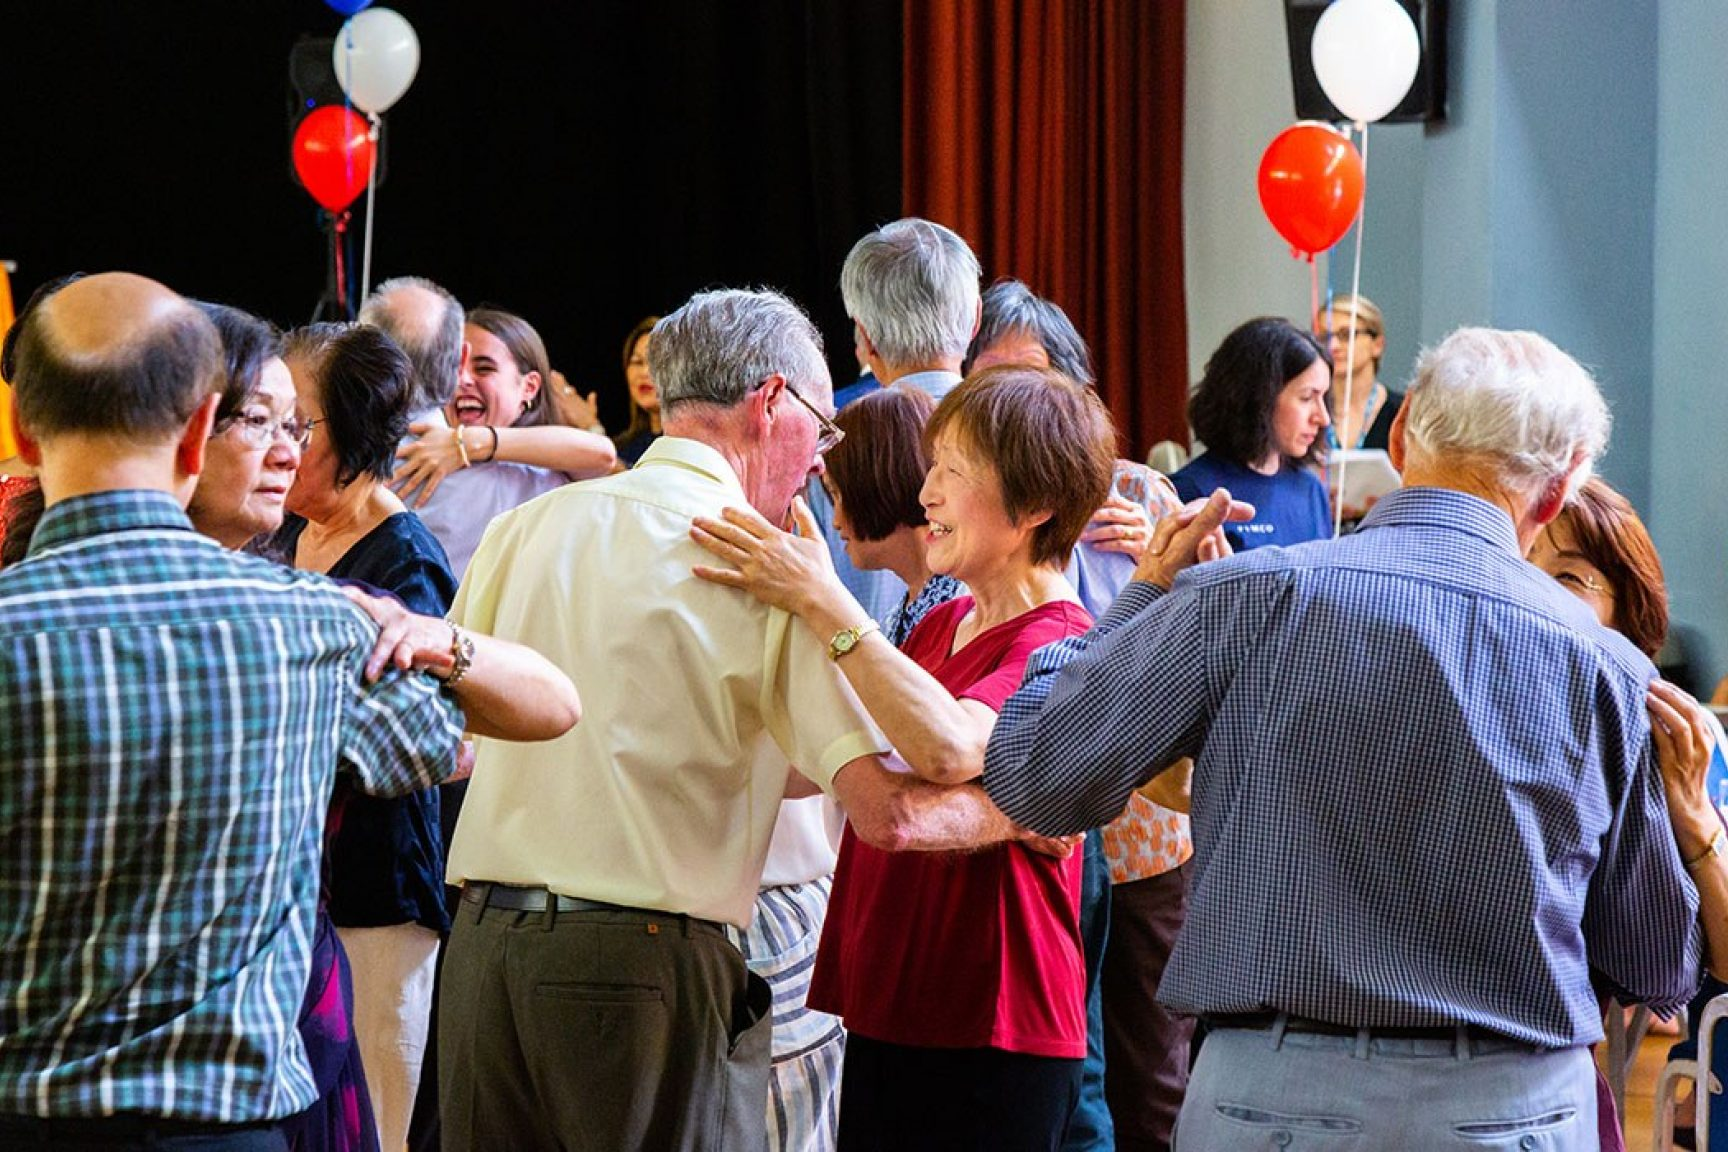 There are older couples dancing at a community space. Balloons are decorating the space.